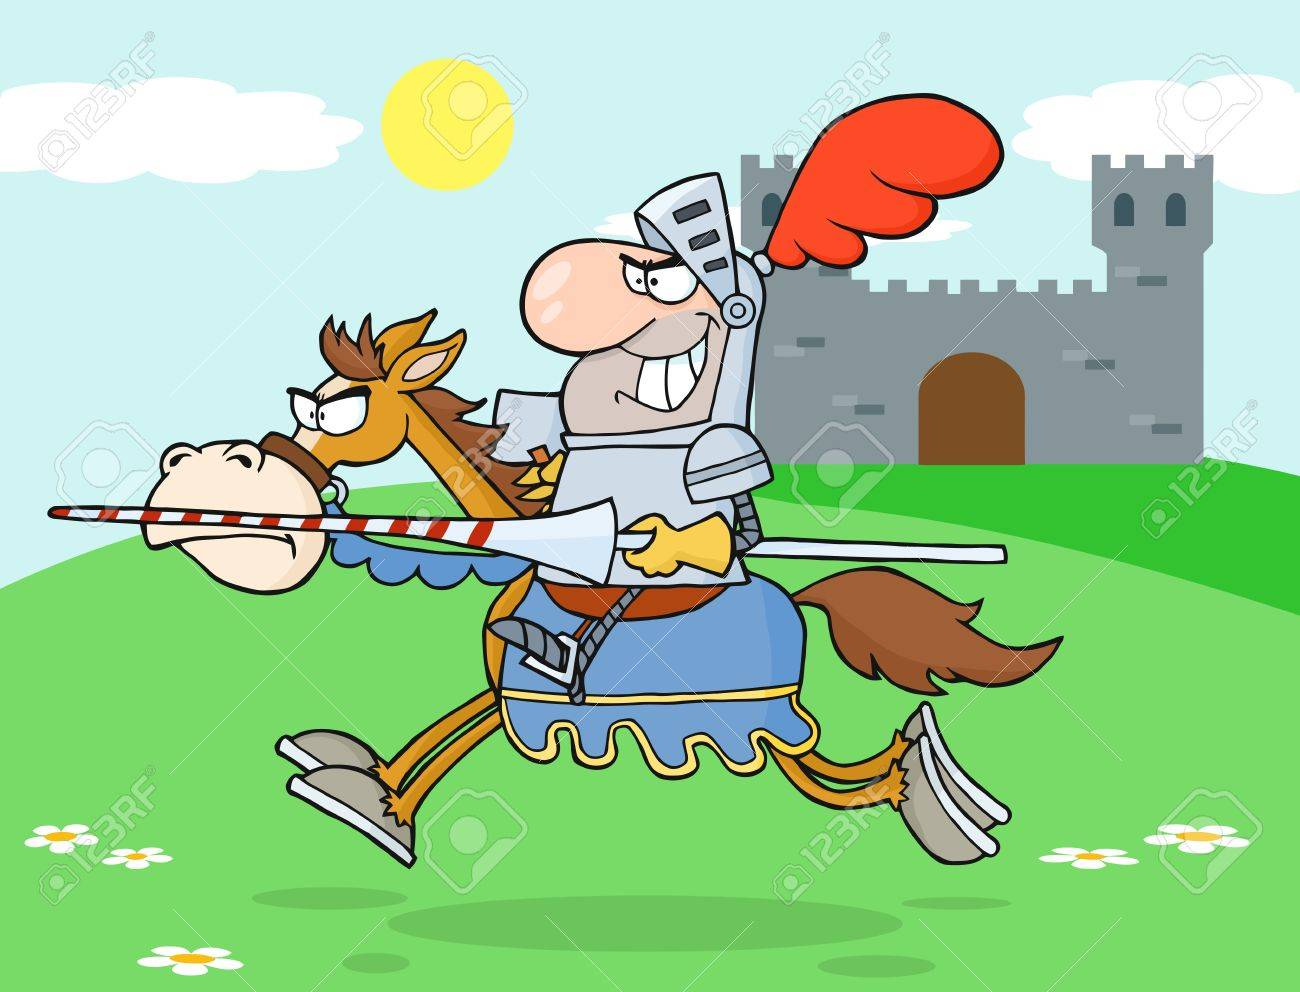 Knight Riding Horse In The background Of Medieval Castle - 15481441